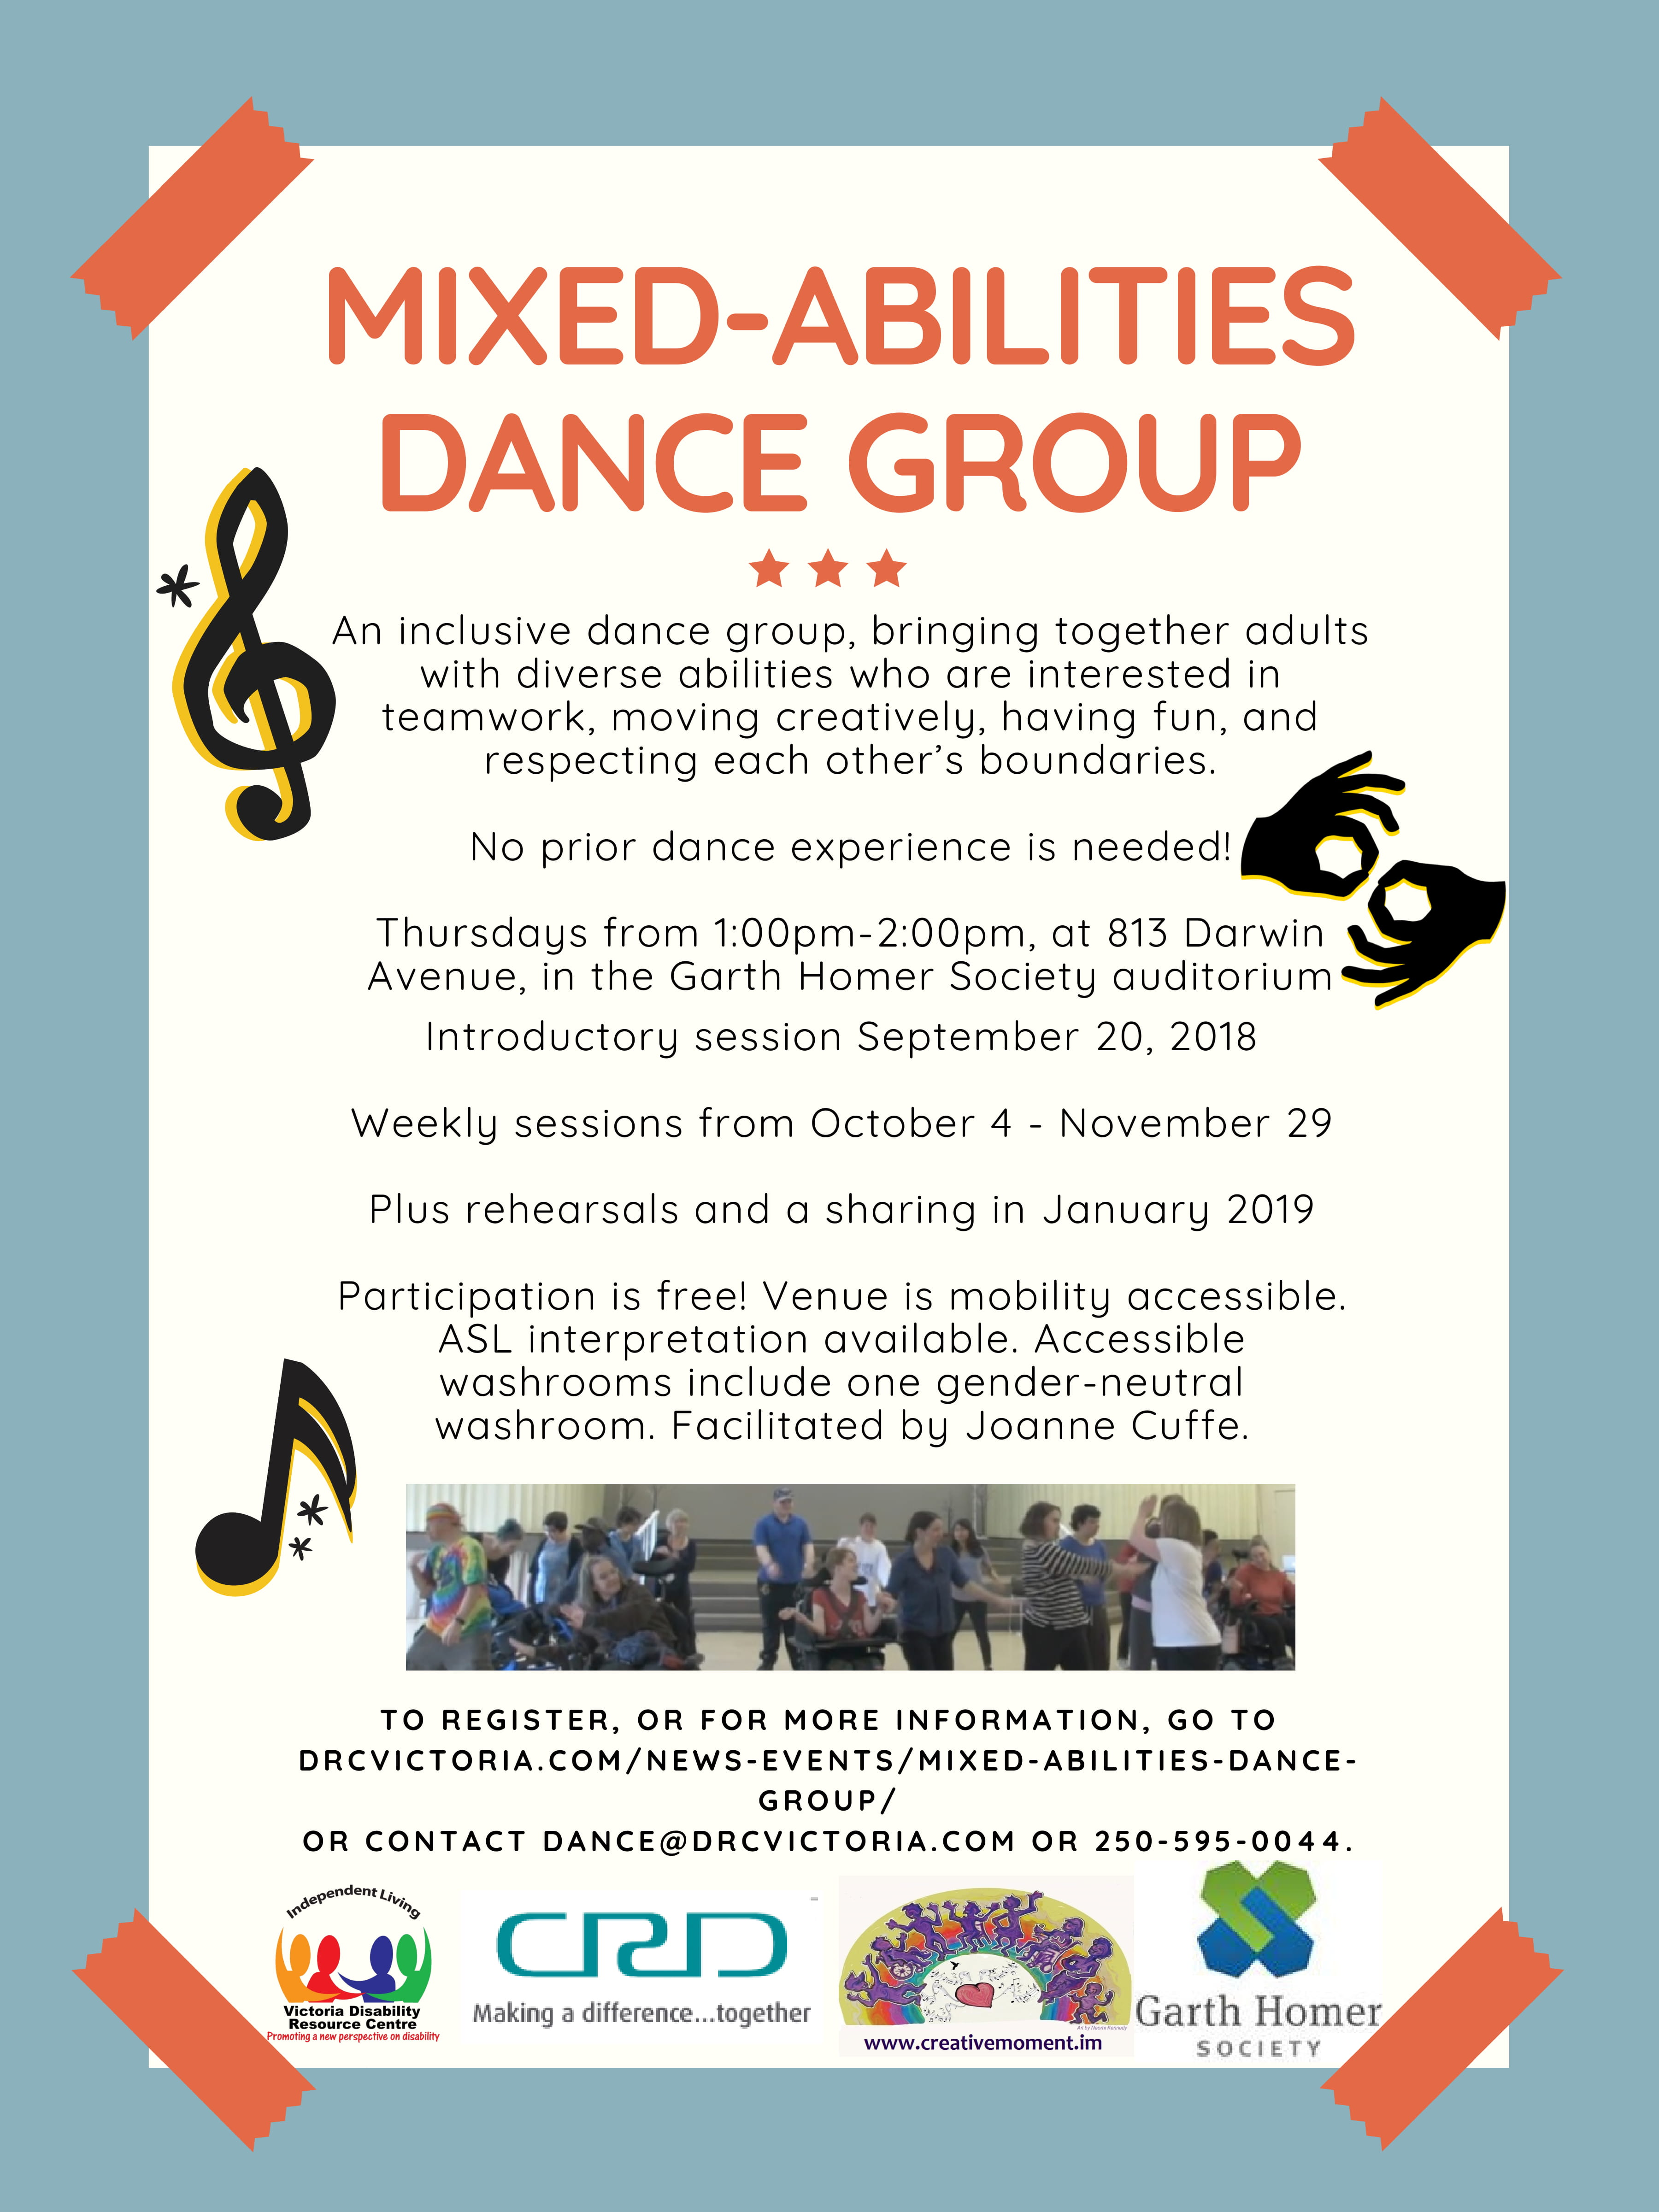 Poster text reads: Mixed-Abilities Dance Group. An inclusive dance group, bringing together adults with diverse abilities, who are interested in teamwork, moving creatively, having fun, and respecting each other's boundaries. No prior dance experience is needed! Thursdays from 1pm-2pm, at 813 Darwin Avenue, in the Garth Homer Society auditorium introductory session September 20, 2018. Weekly sessions from October 4 - November 29. Plus rehearsals and a sharing in January 2019. Participation is free! Venue is mobility accessible. ASL interpretation available. Accessible washrooms include one gender-neutral washroom. Facilitated by Joanne Cuffe. To register, or for more information, go to DRCVictoria.com/news-events/mixed-abilities-dance-group/ or contact dance@drcvictoria.com or 250-595-0044. Victoria Disability Resource Center, Capital Region District, Creative Momement, Garth Homer Society.